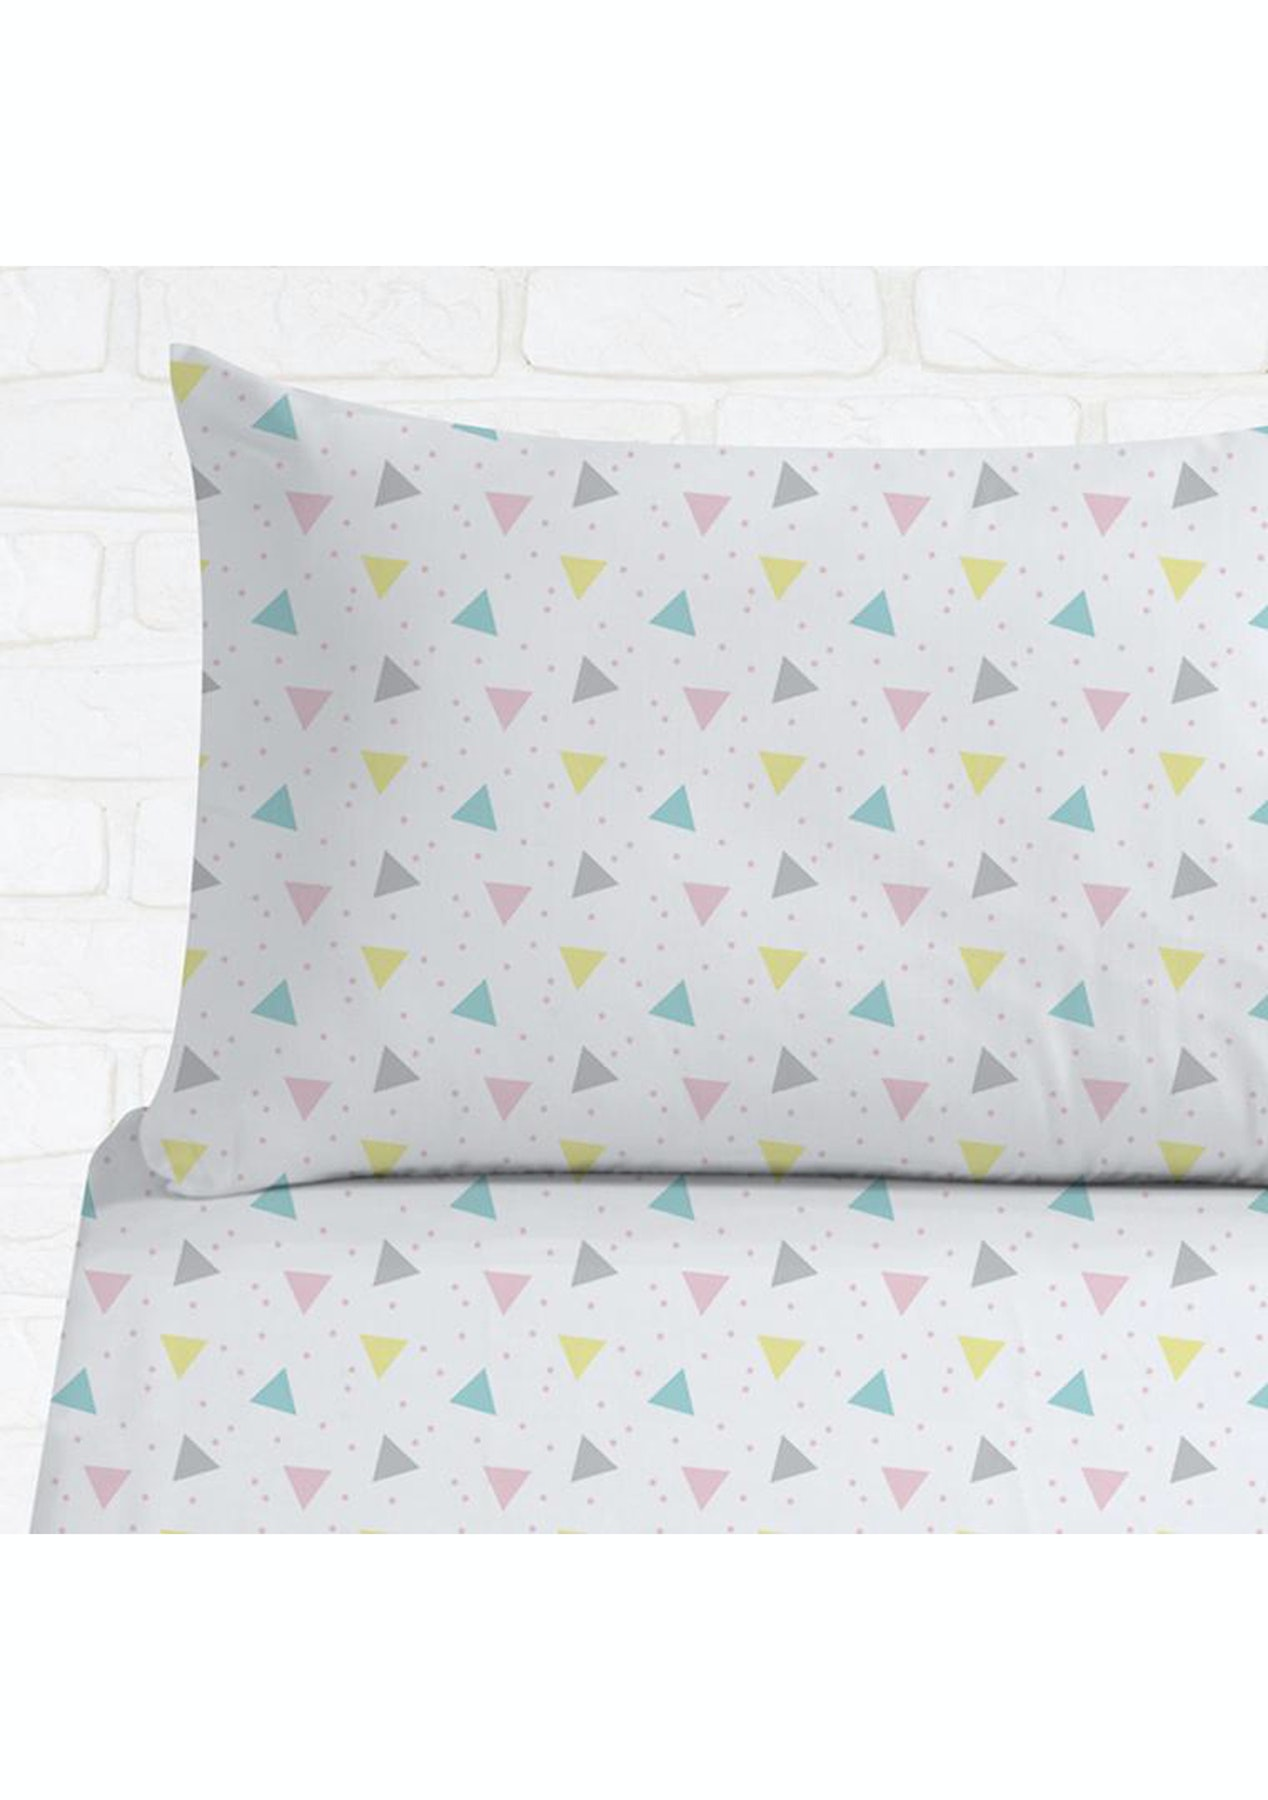 b0e96f1ab93 Living Textiles - 2Pc Sprinkles Fitted Sheet Set - Single/Kingsingle -  Living Textiles Nursery Bedding & More up to 65% Off - Onceit